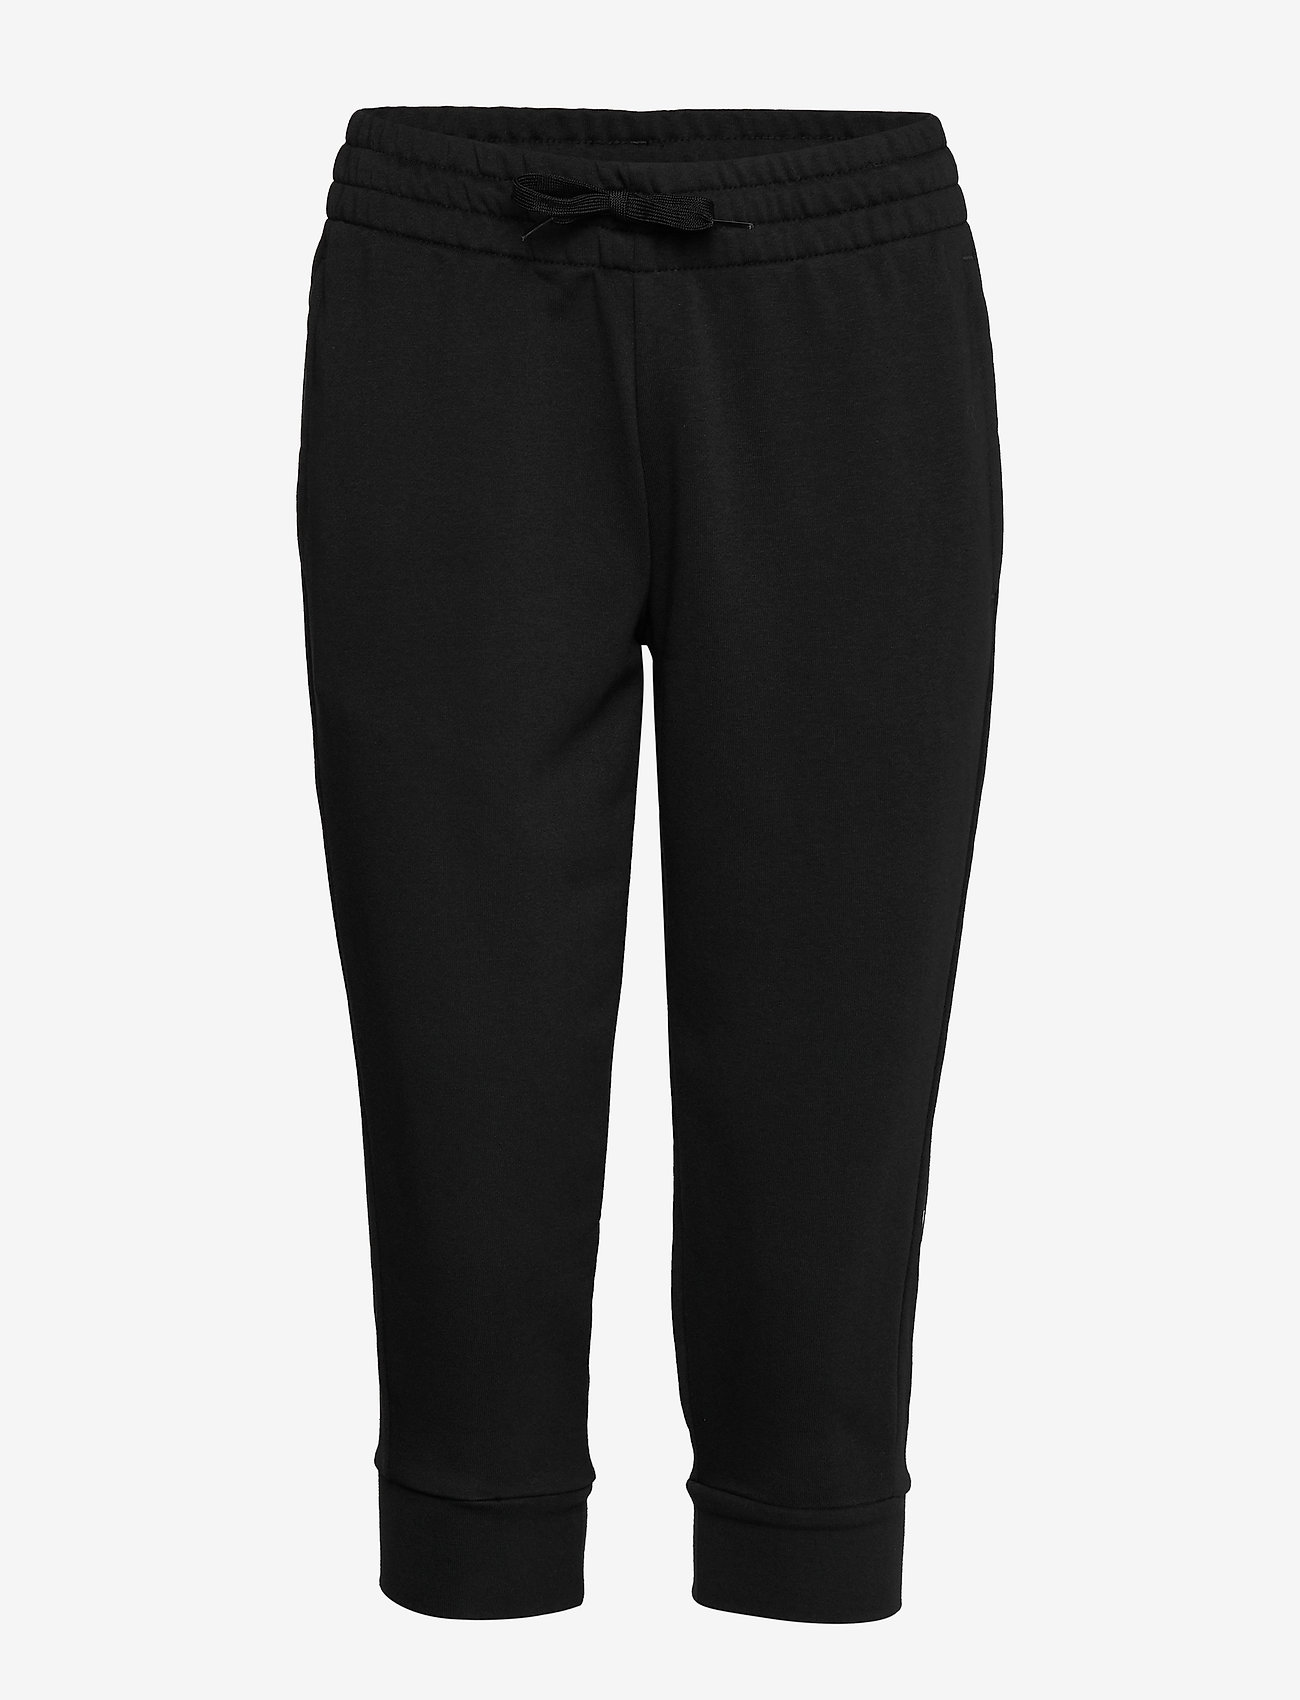 adidas Performance - Essentials Linear 3/4 Pants W - bukser - black/white - 1